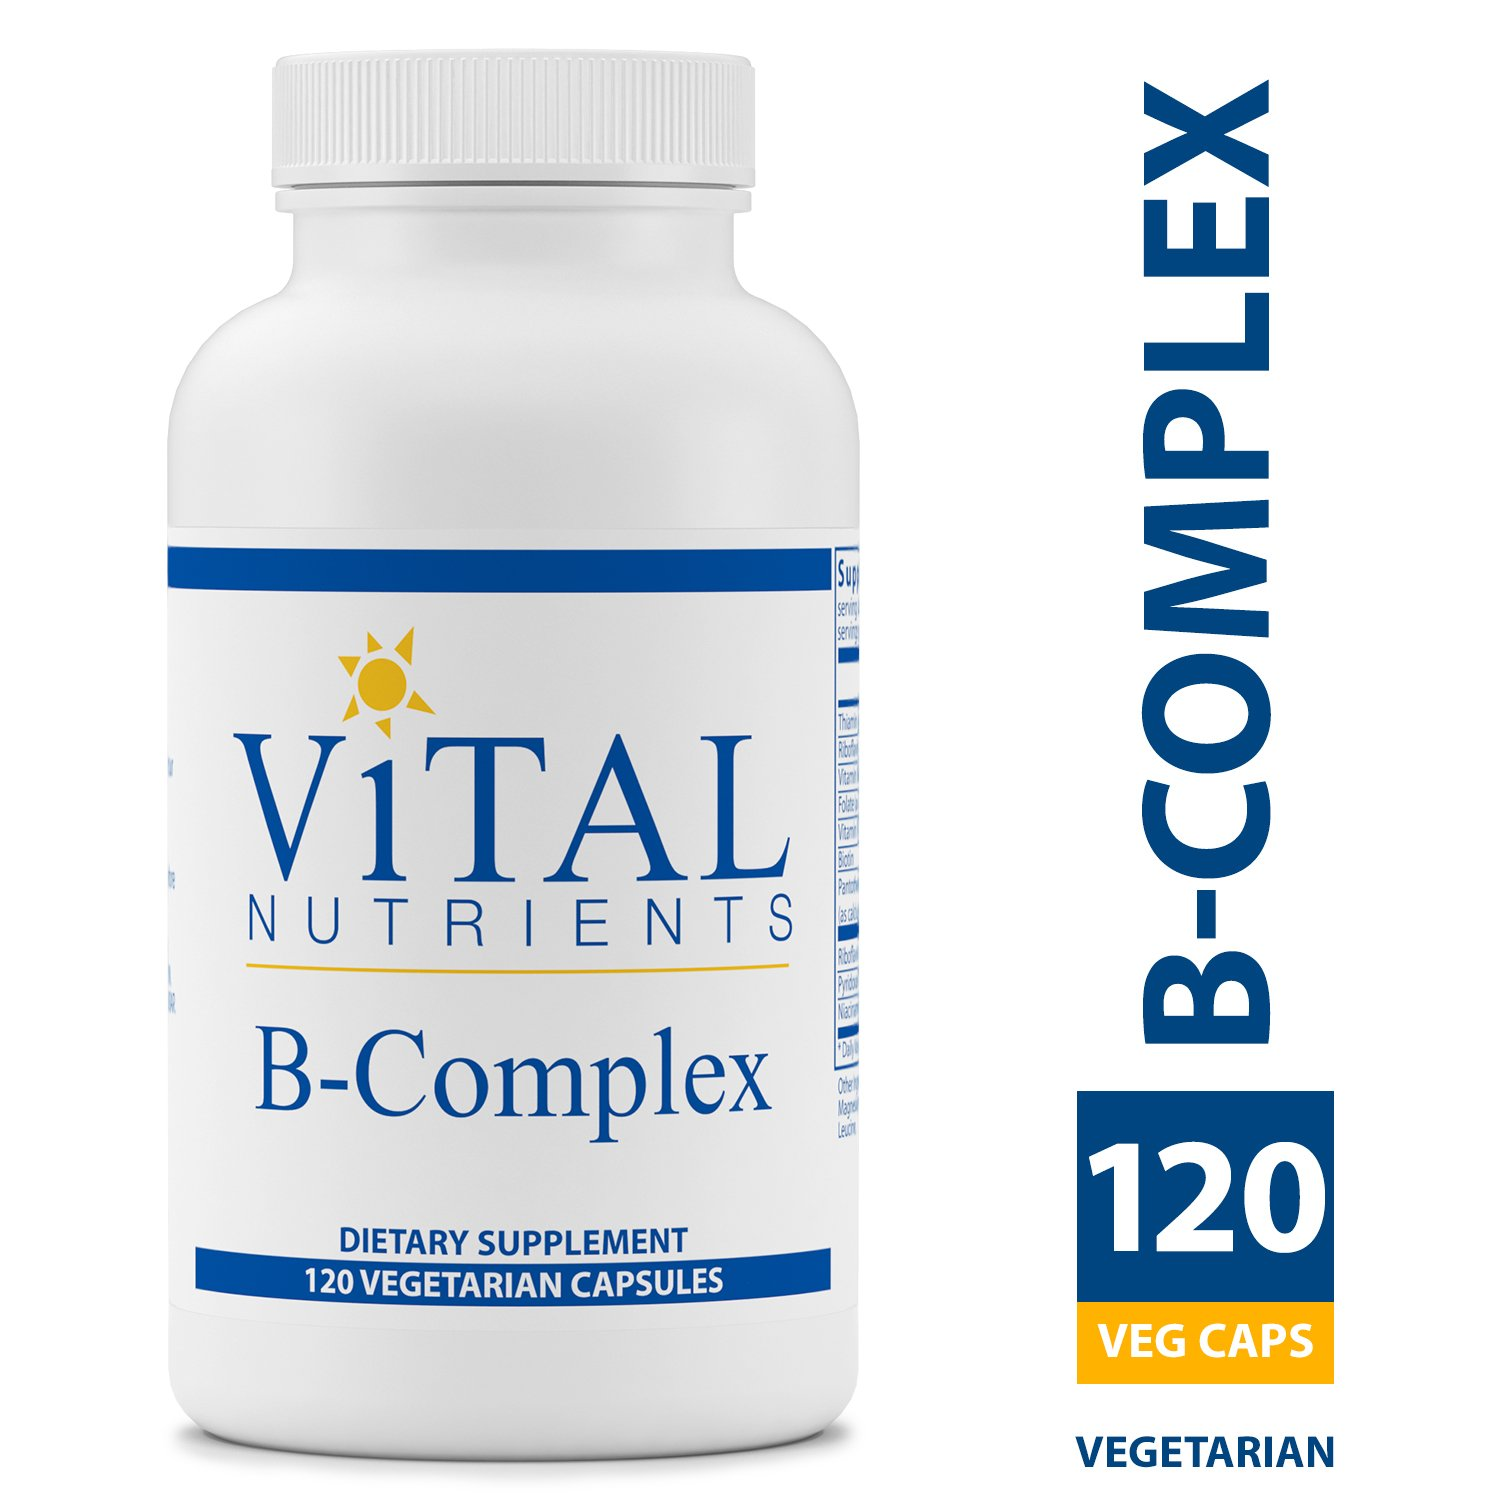 Vital Nutrients - B-Complex - Balanced High Potency B Vitamin Complex - Supports Energy Production, Metabolism and Heart Health - Gluten Free - 120 Vegetarian Capsules per Bottle by Vital Nutrients